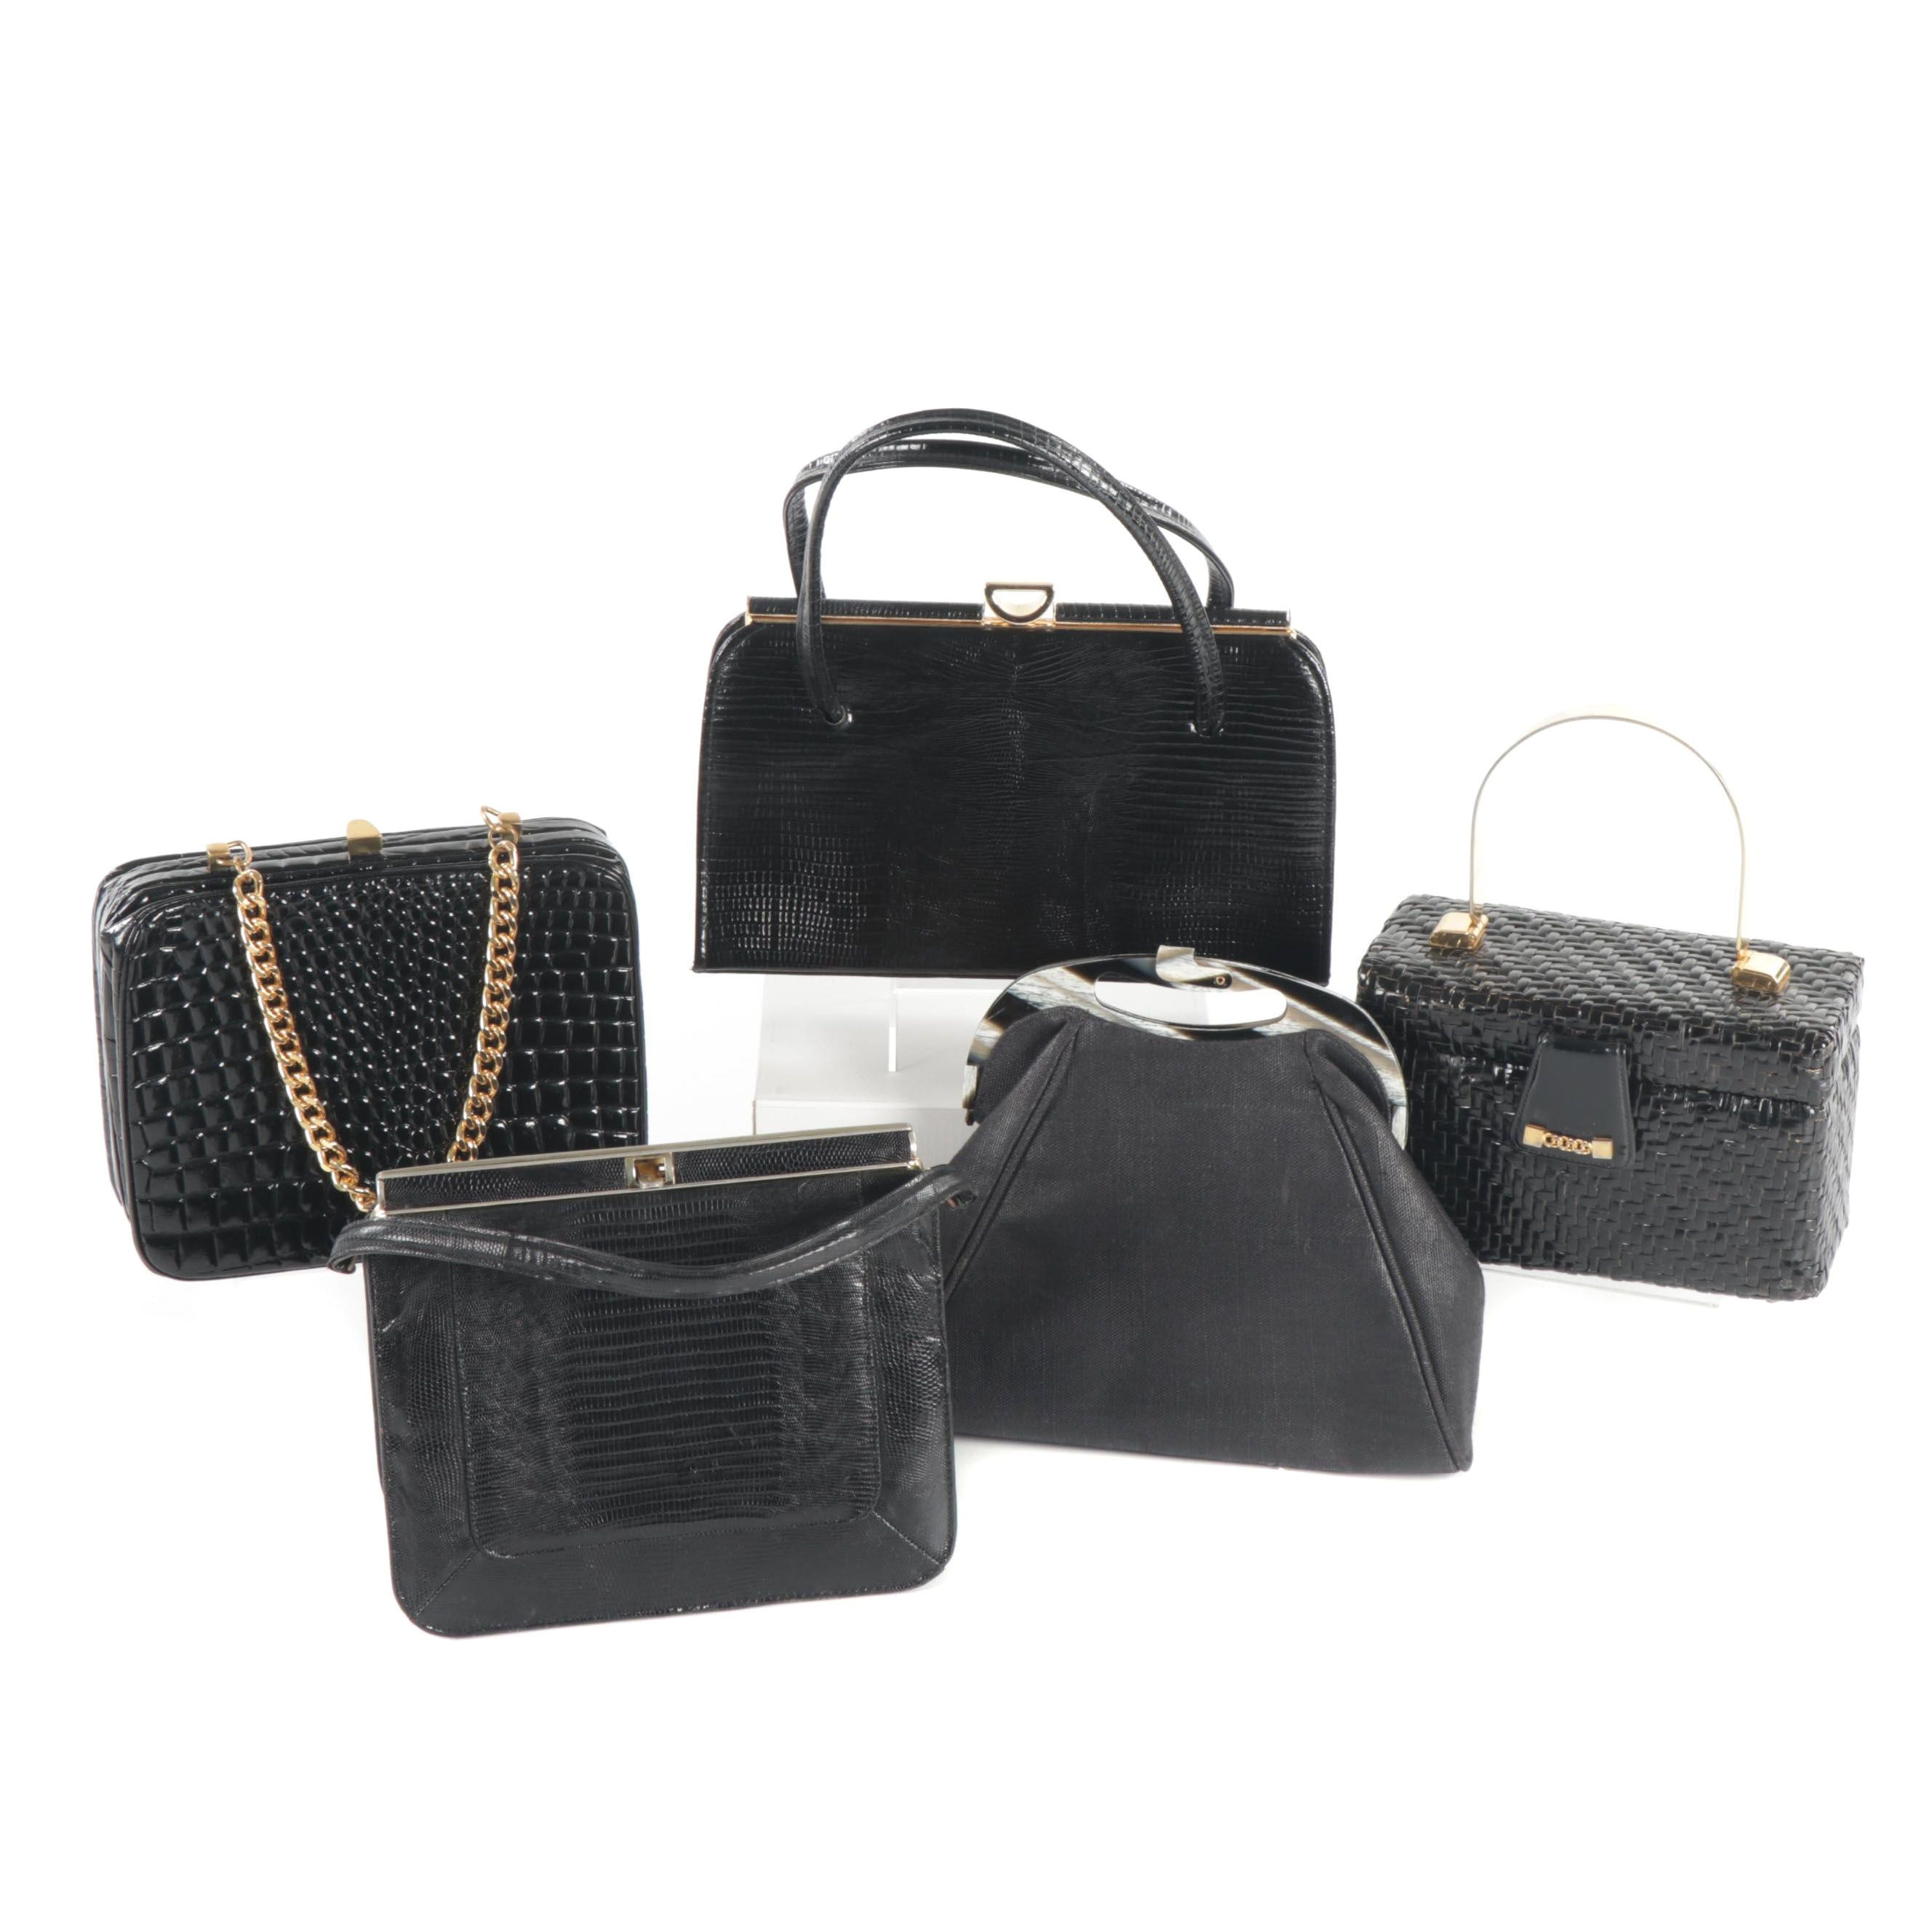 Black Handbags Featuring Crouch & Fitzgerald and Carrie Forbes